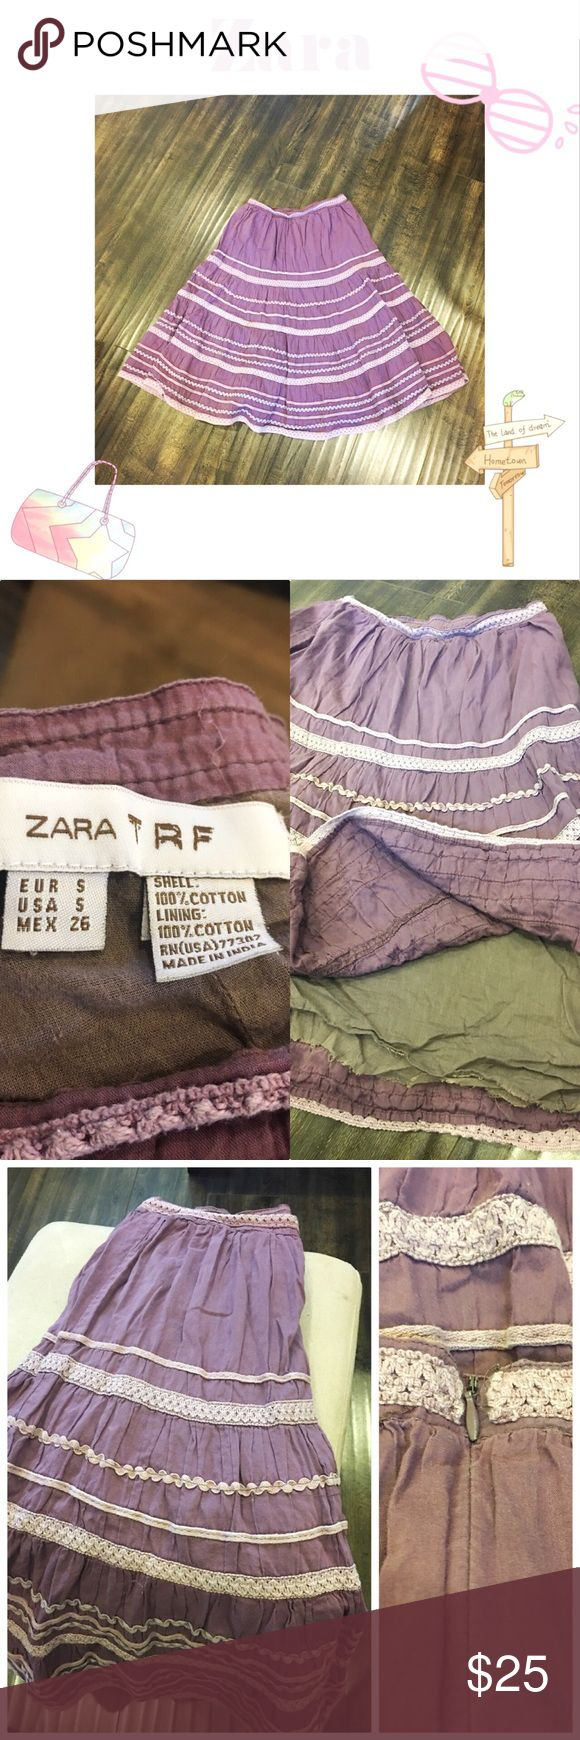 🌼New Listing🆕Beautiful Zara Skirt Beautiful Zara skirt. Purple. Size small. 100% cotton with lining. Very comfy and in good condition! Zara Skirts Midi